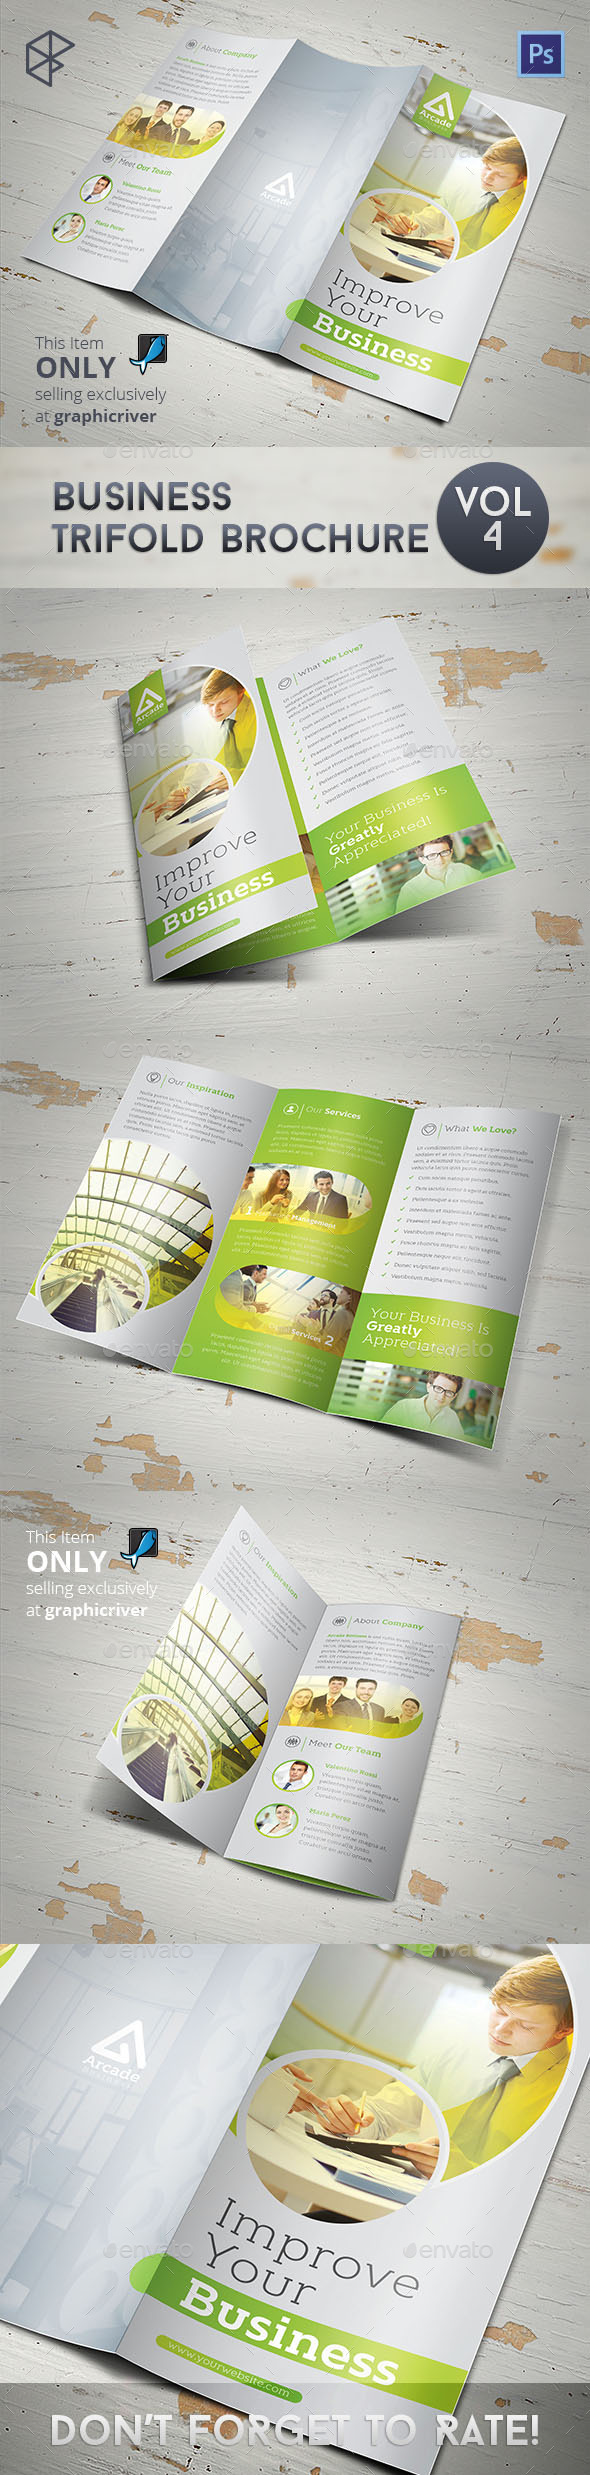 GraphicRiver Business Trifold Brochure Vol 4 11134558